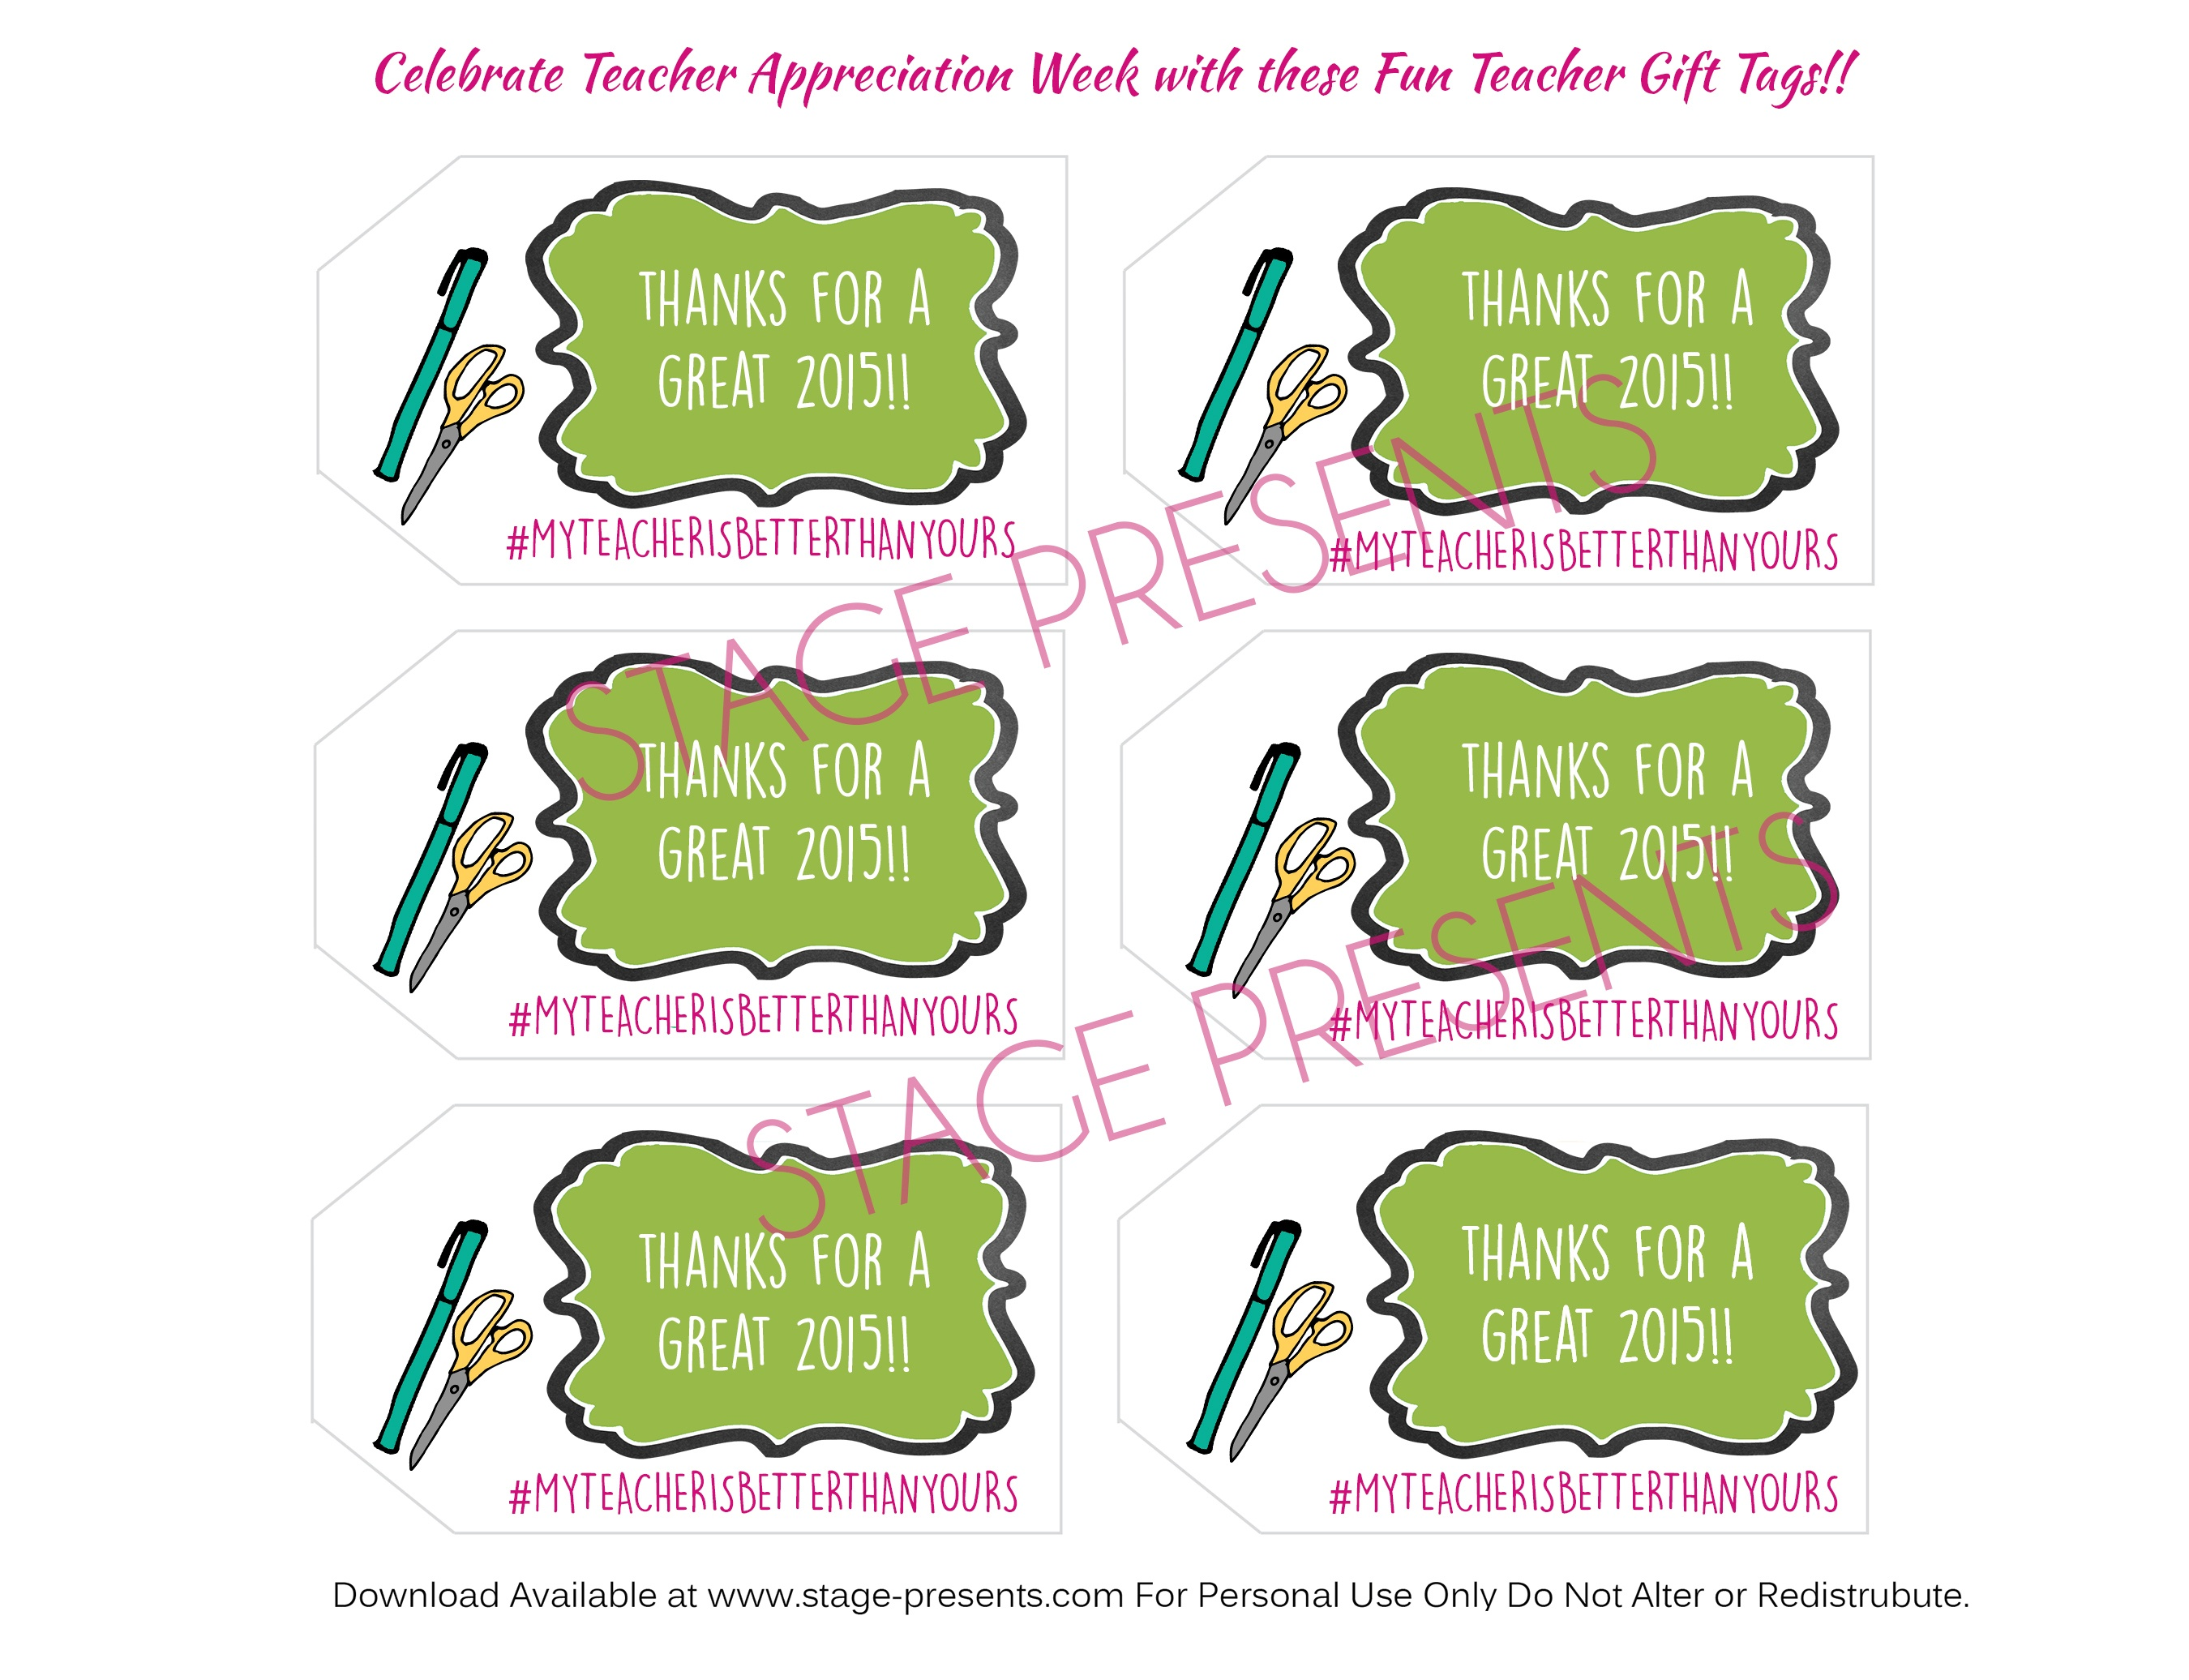 A Salute To Dedicated And Devoted Teachers + Free Printable Teacher - Teacher Gift Tags Printable Free